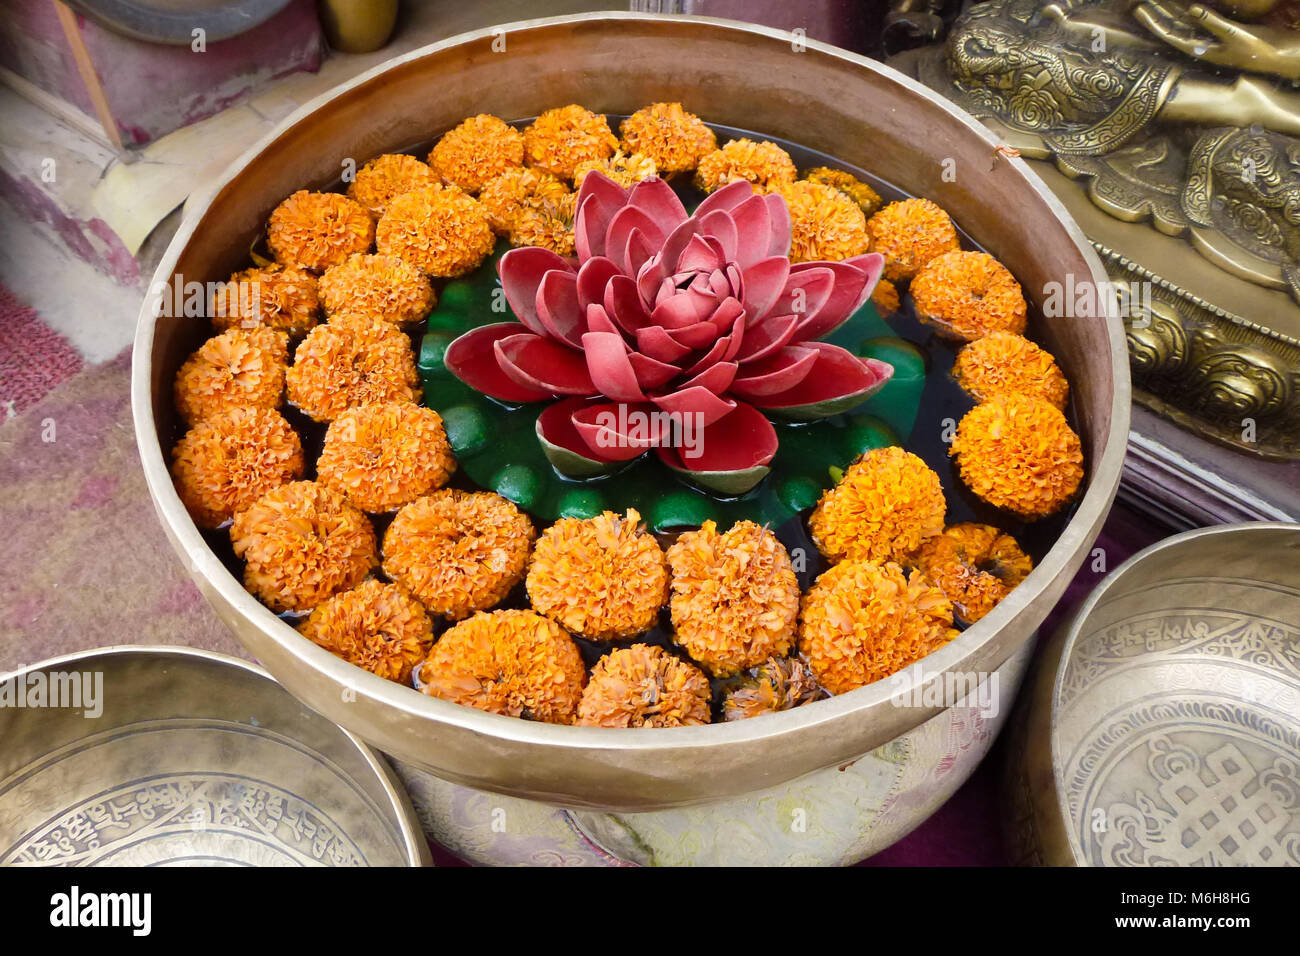 Sacred orange flowers in a bowl with lotus flower kathmandu nepal sacred orange flowers in a bowl with lotus flower kathmandu nepal izmirmasajfo